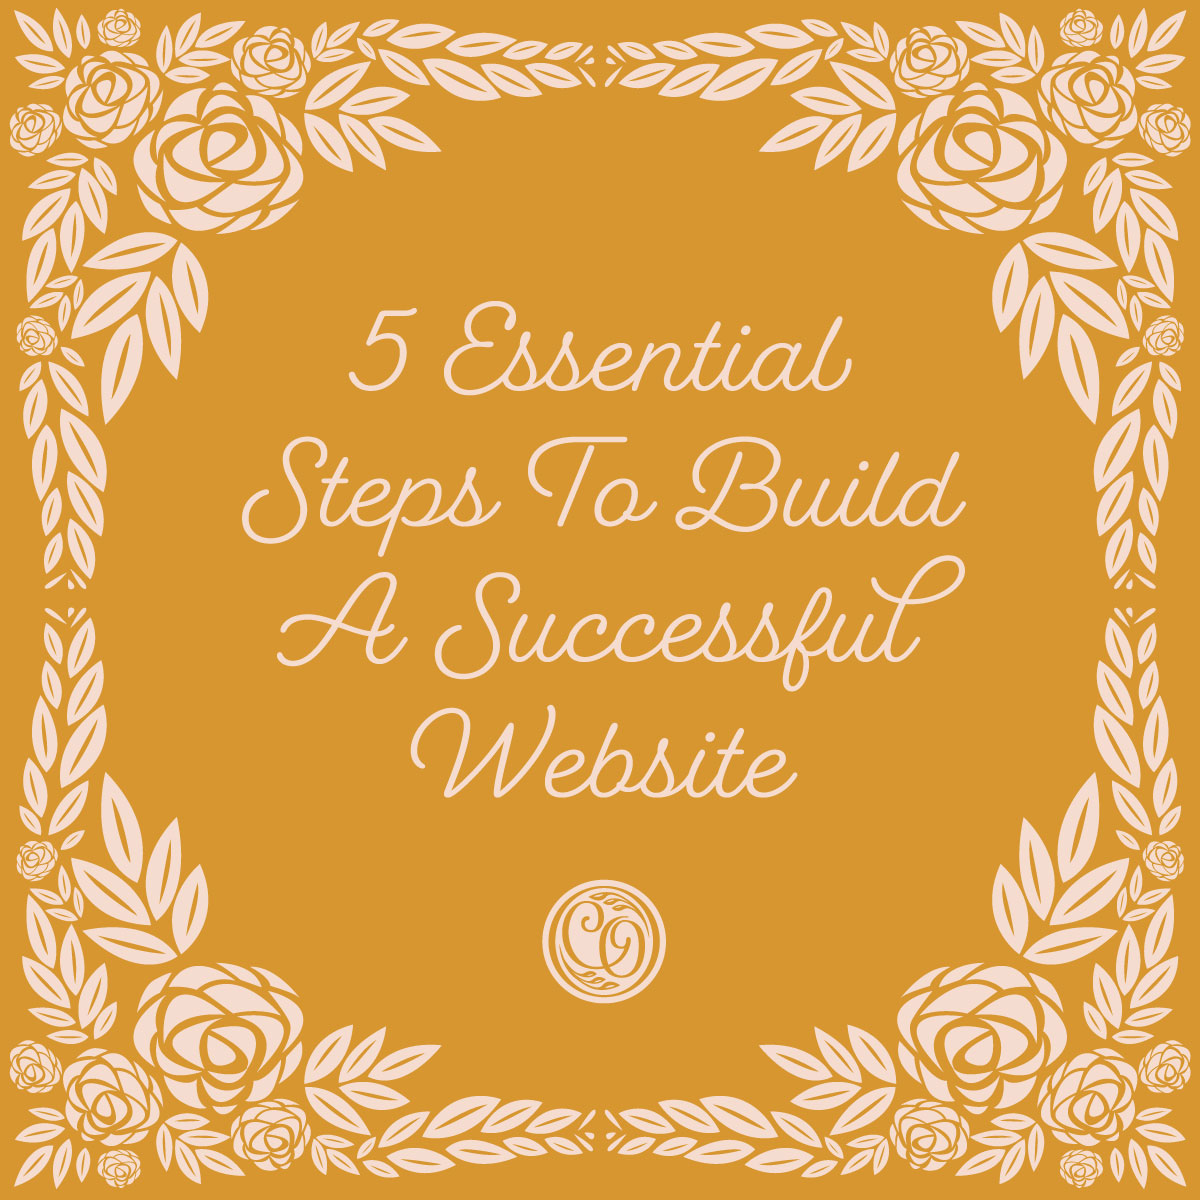 Five Essentials Steps to Build a Successful Website